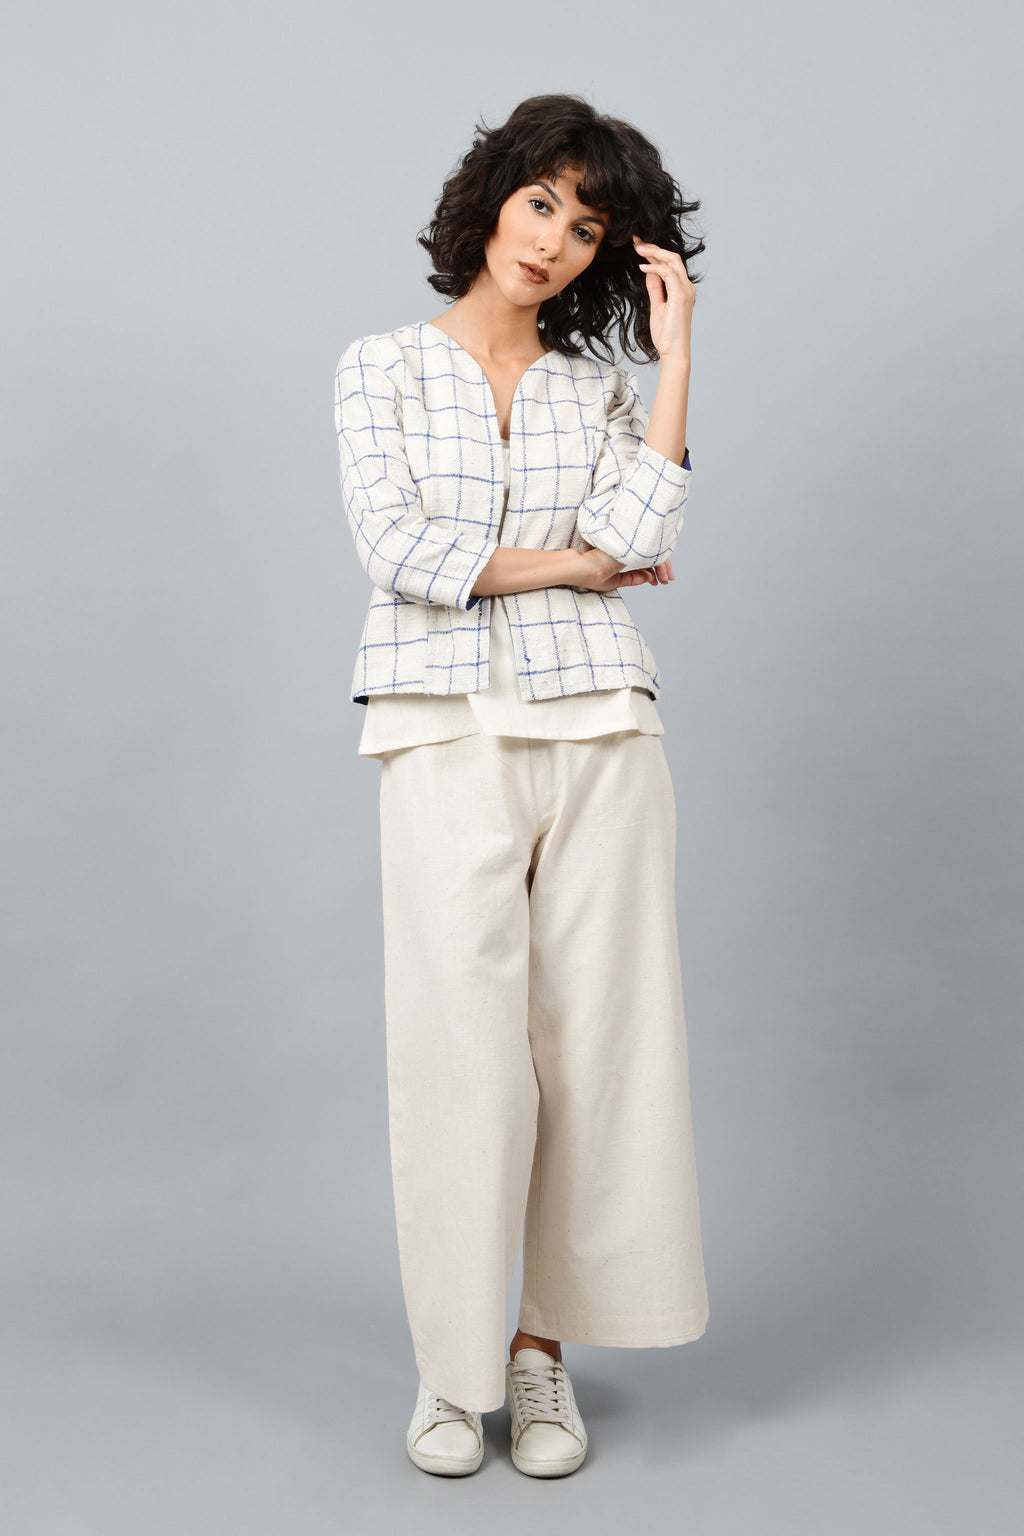 Brazilian Model posing for the camera wearing open short jacket in thicker white handspun and handwoven khadi cotton with big blue checks over off-white spaghetti top and off-white palazzos paired with white sneakers all made in India